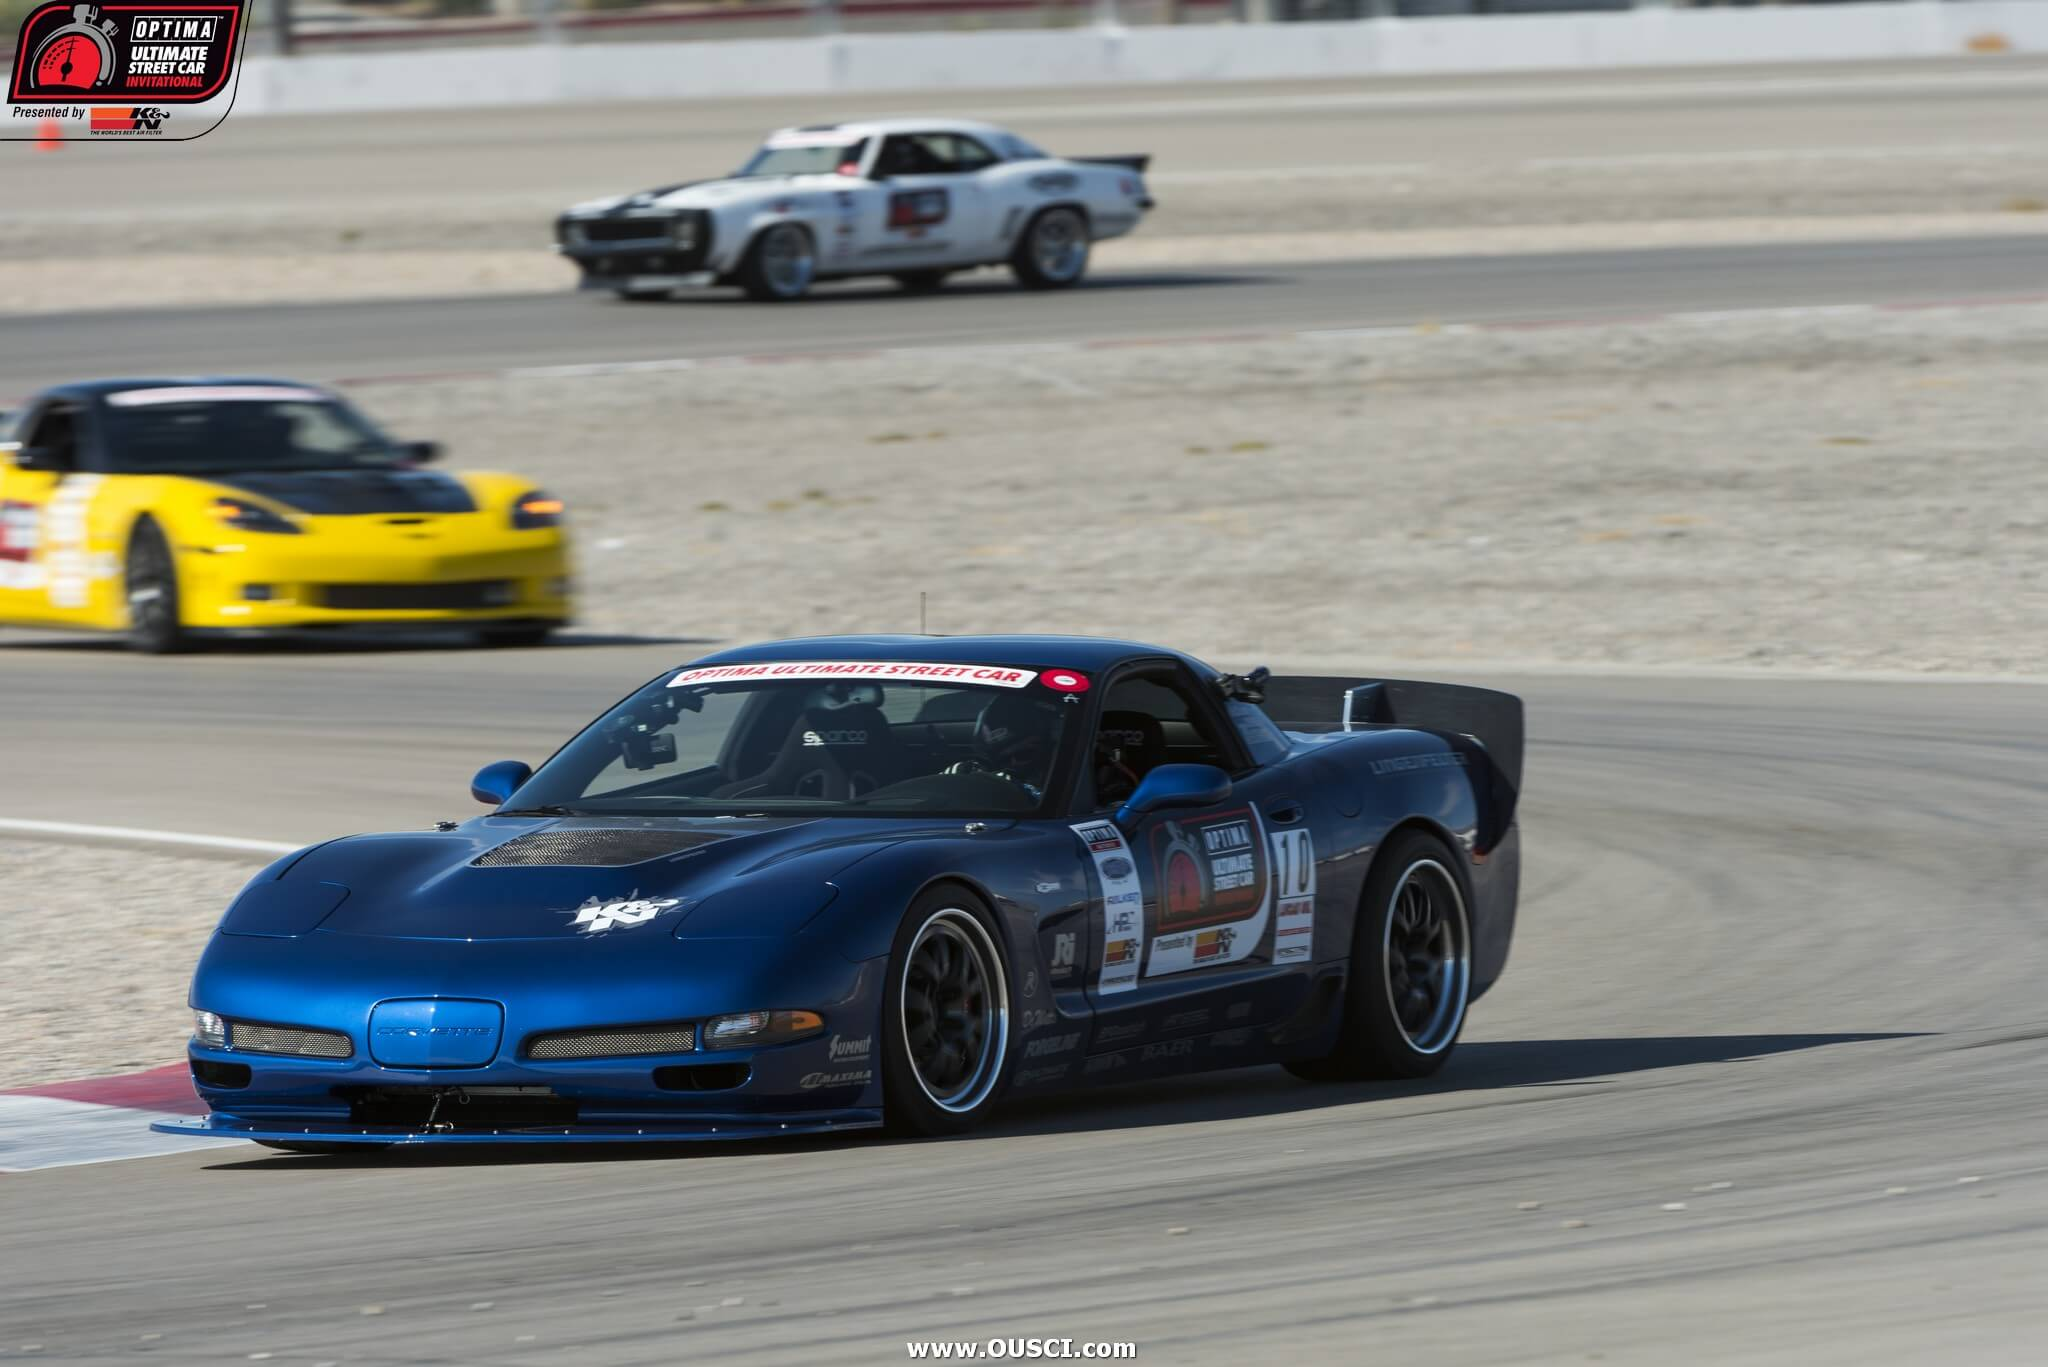 Danny-Popp-2003-Chevrolet-Corvette-2016-OPTIMA-Invitational_929